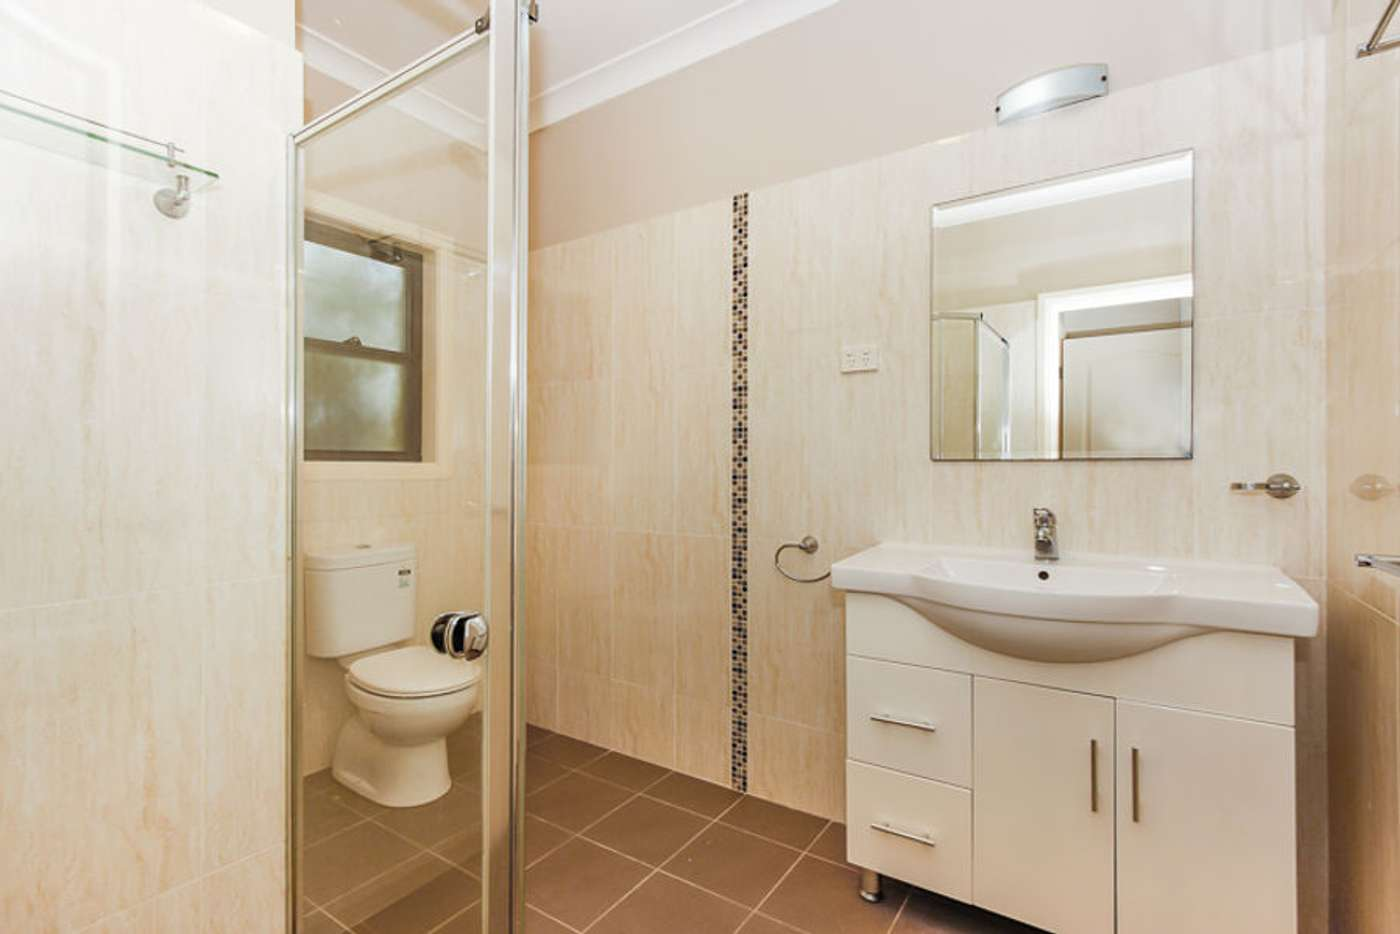 Seventh view of Homely villa listing, 4/6-8 Beattie Avenue, Denistone East NSW 2112